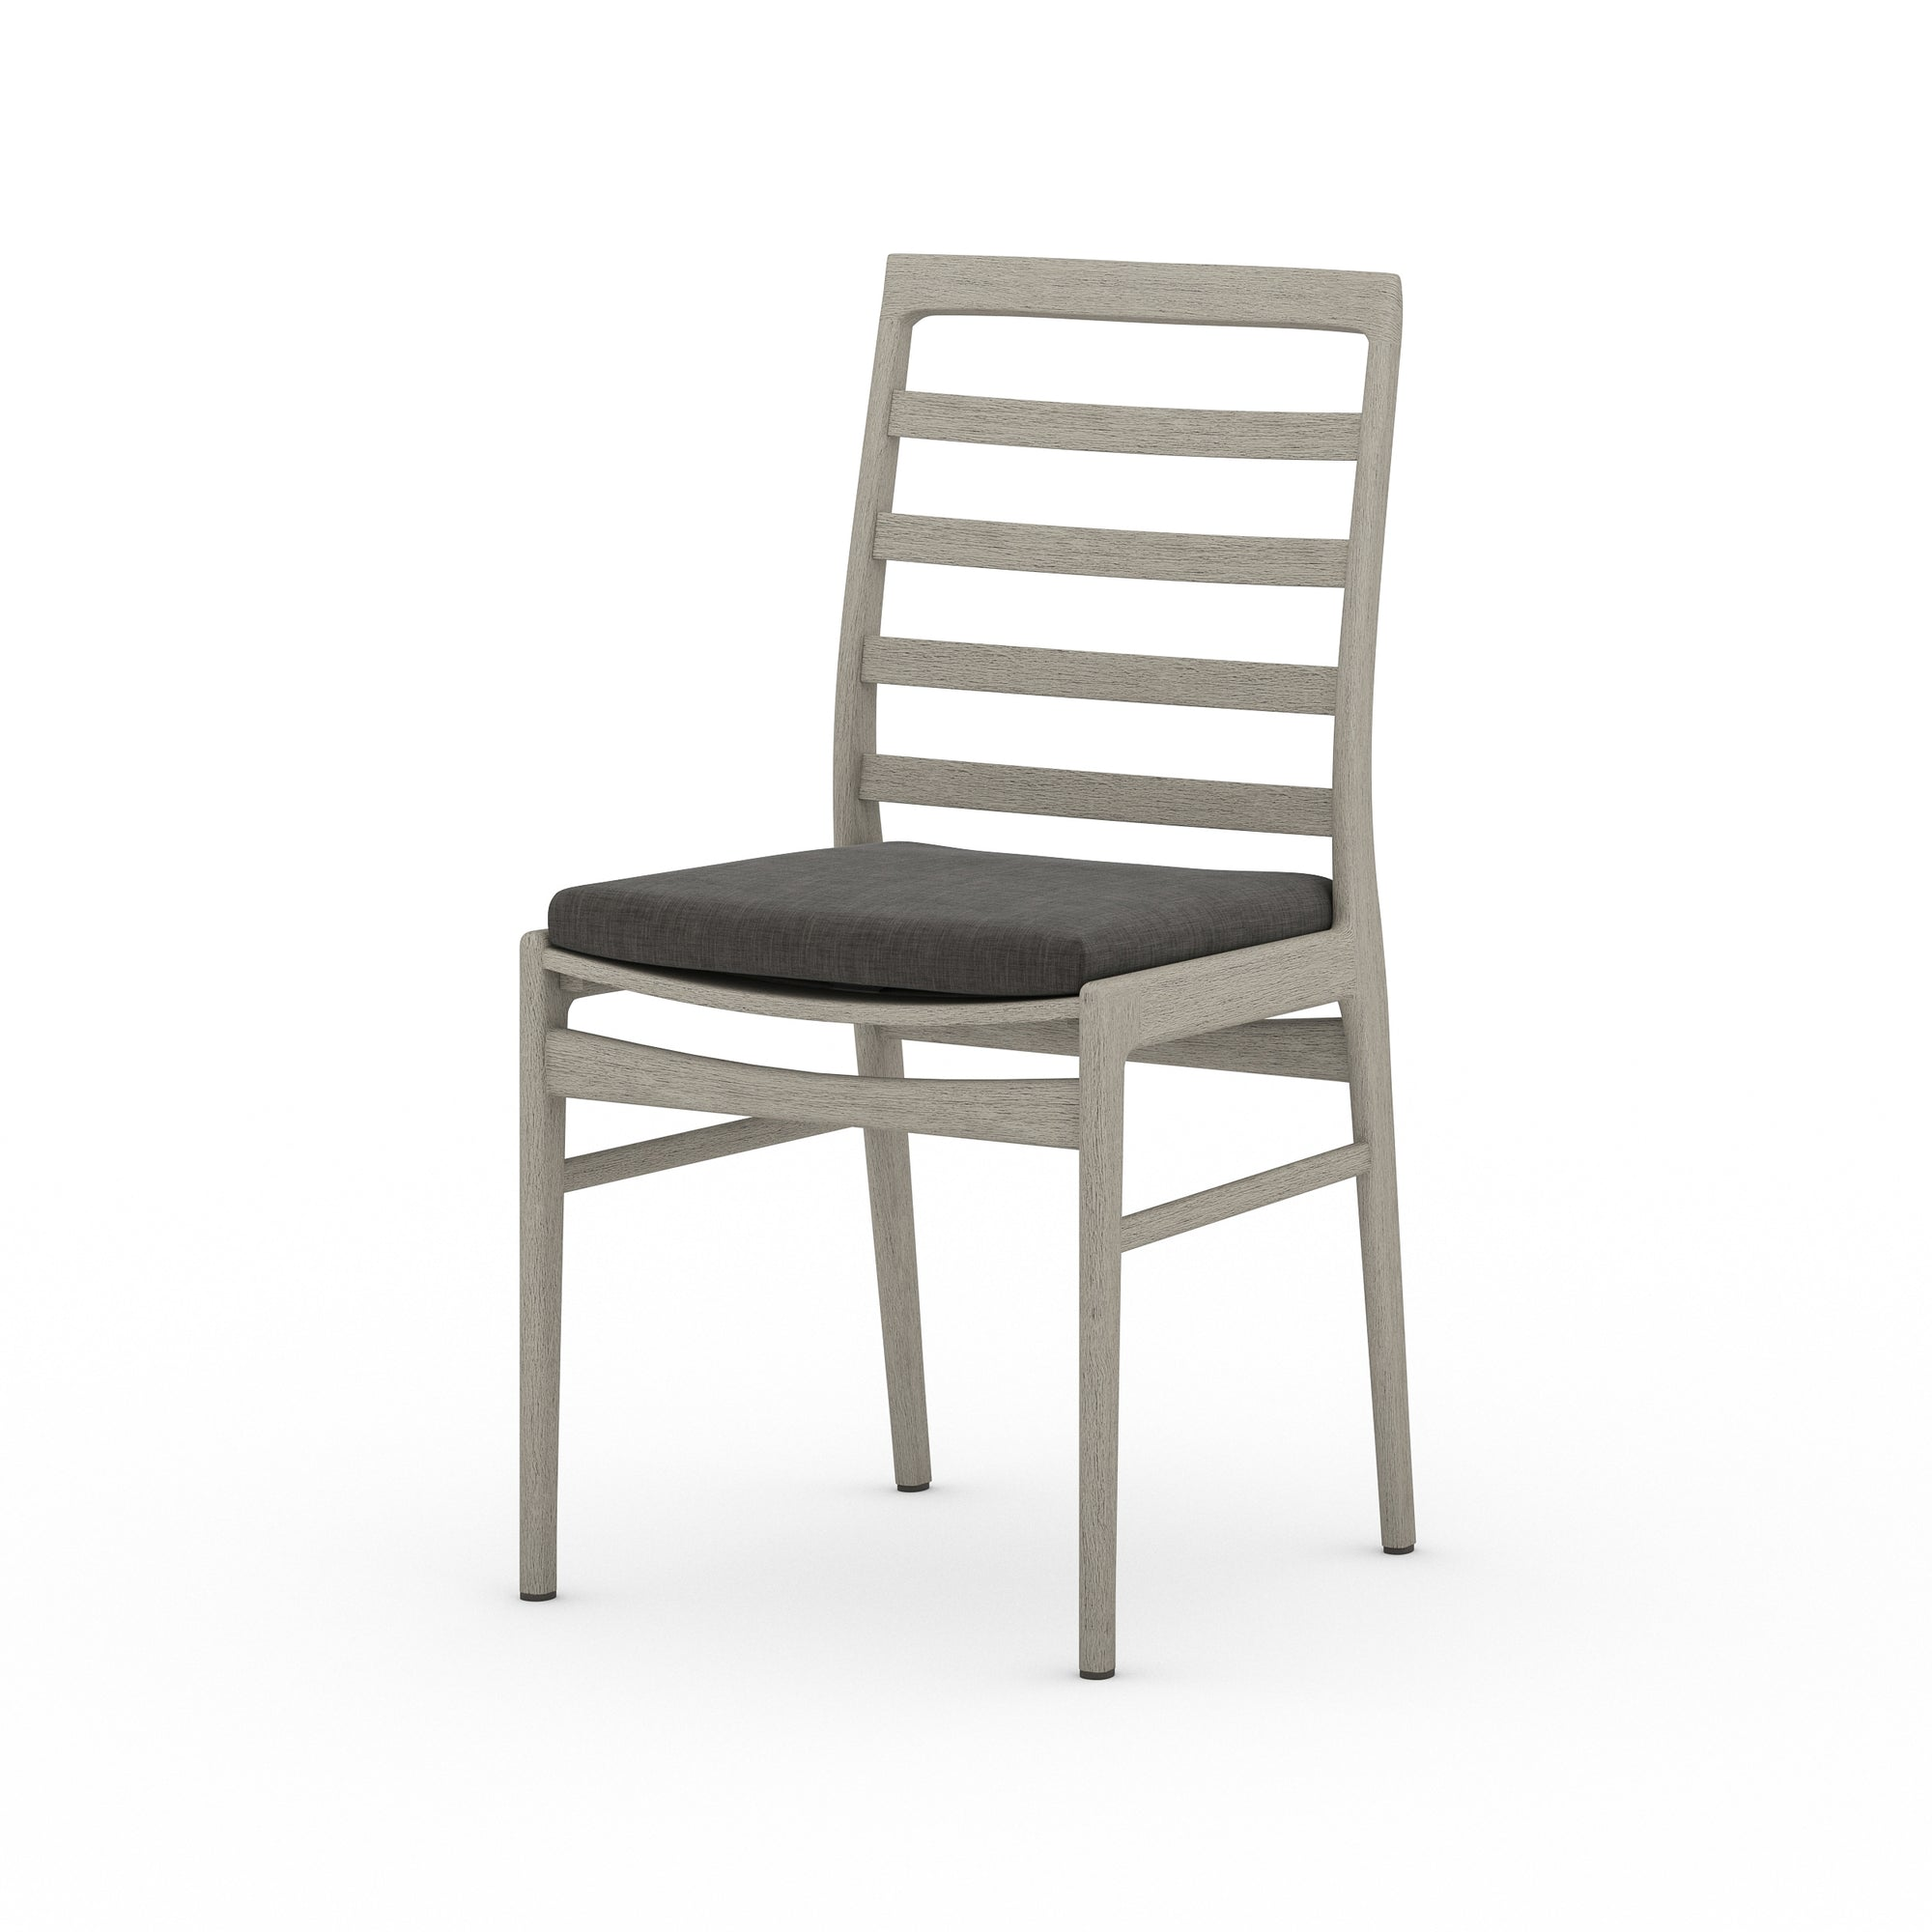 Linnet Outdoor Dining Chair - Grey/Charcoa